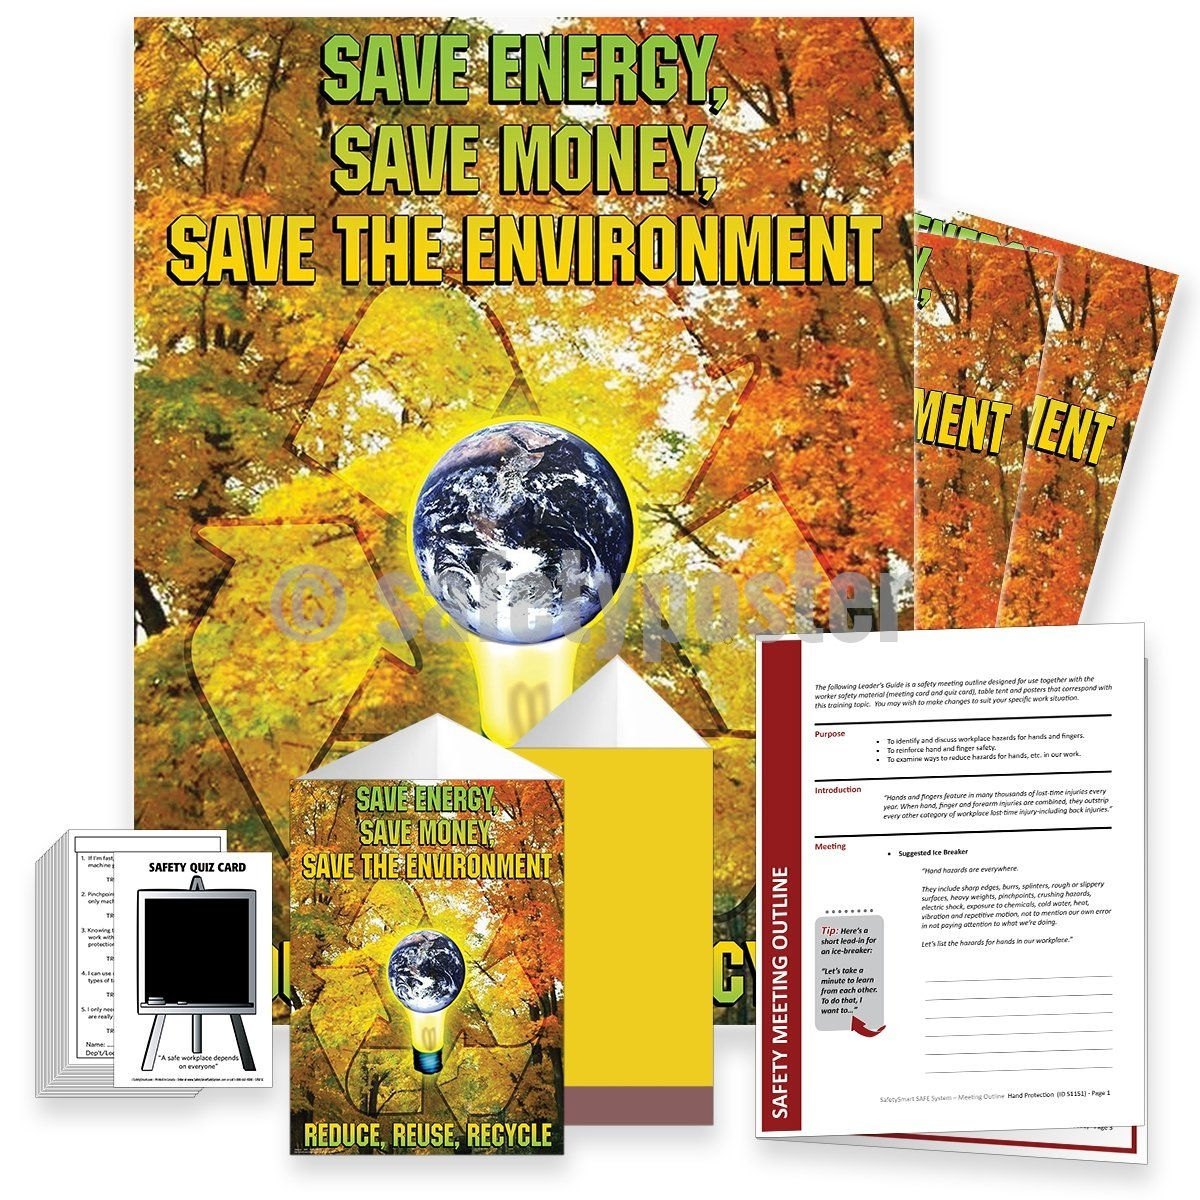 Safety Meeting Kit - Save Energy Money The Environment Kits